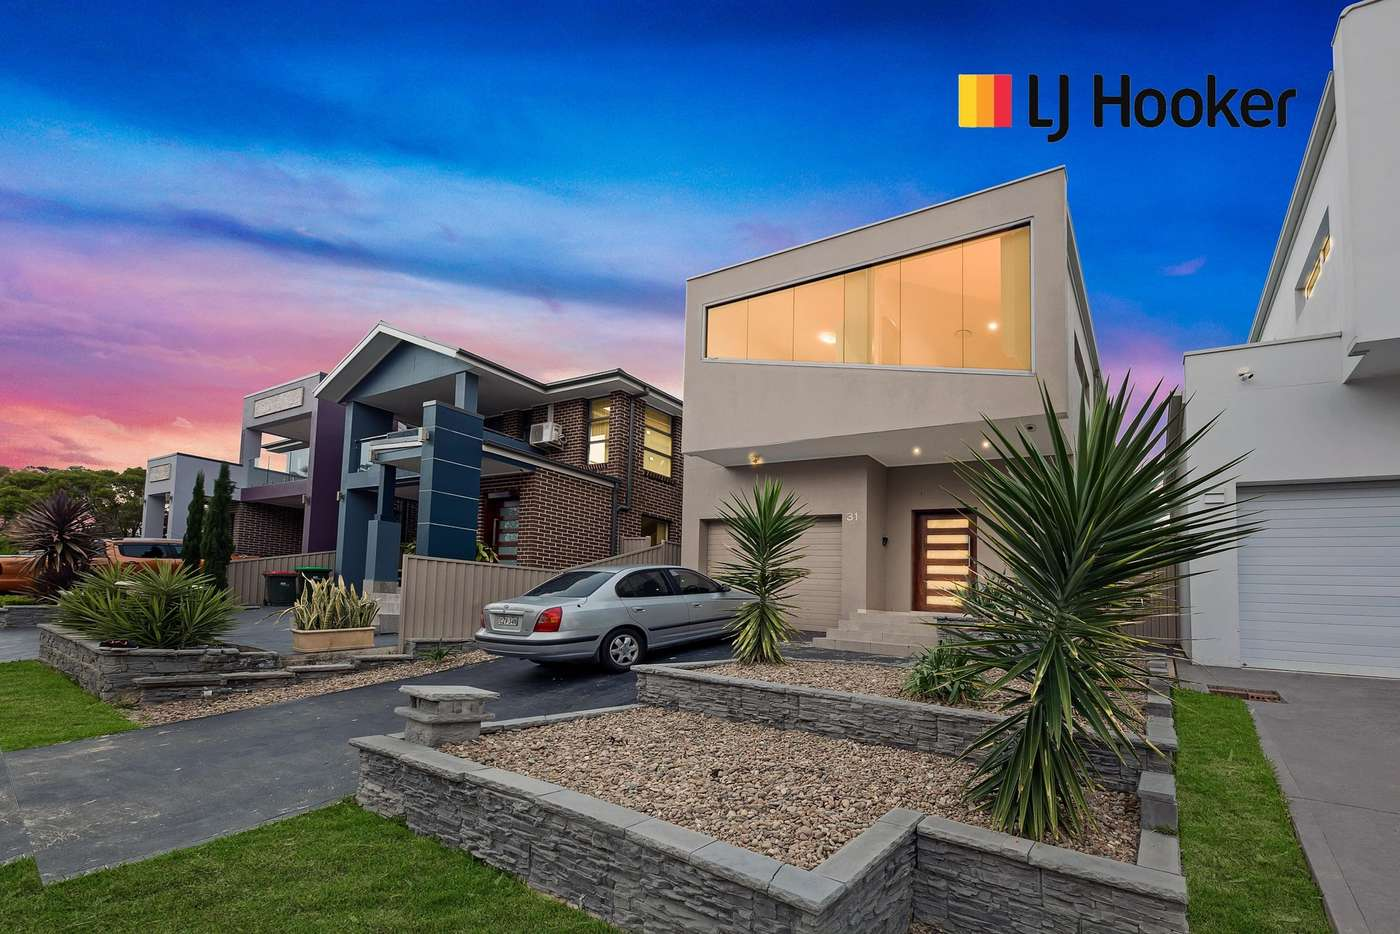 Main view of Homely house listing, 31 Sparrow Lane, Green Valley NSW 2168